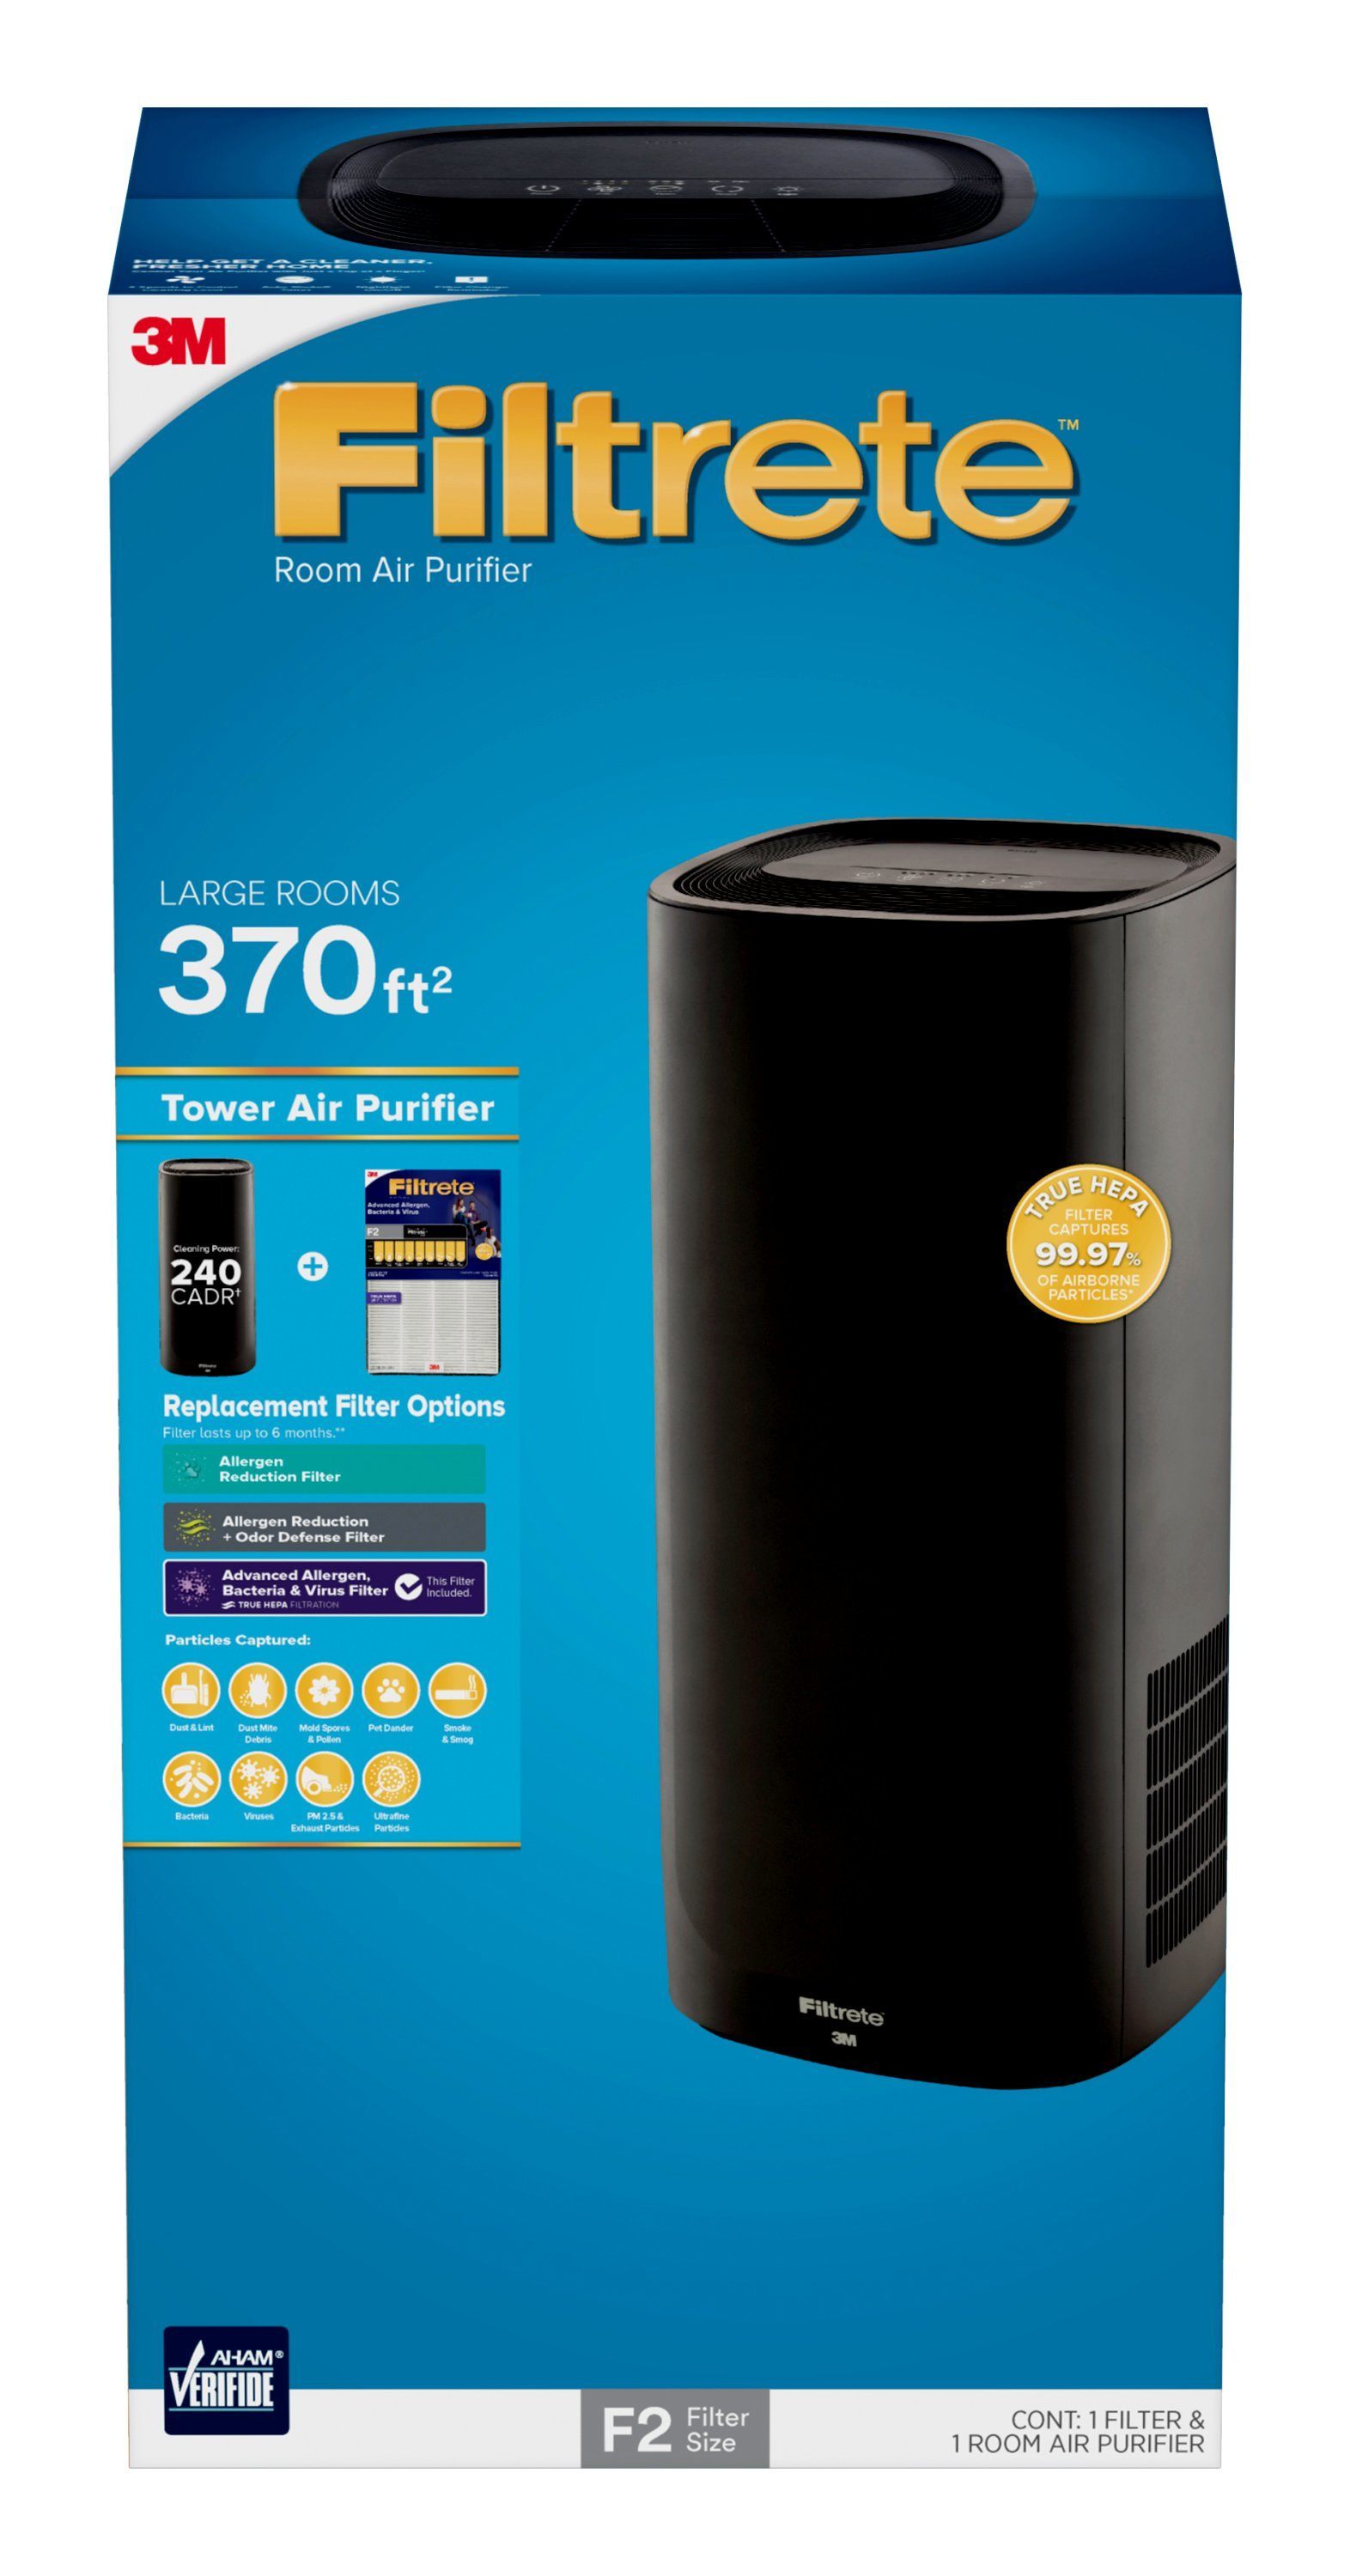 Filtrete By 3M Room Air Purifier, Tower, Large Room, Black, FAP T03 F2